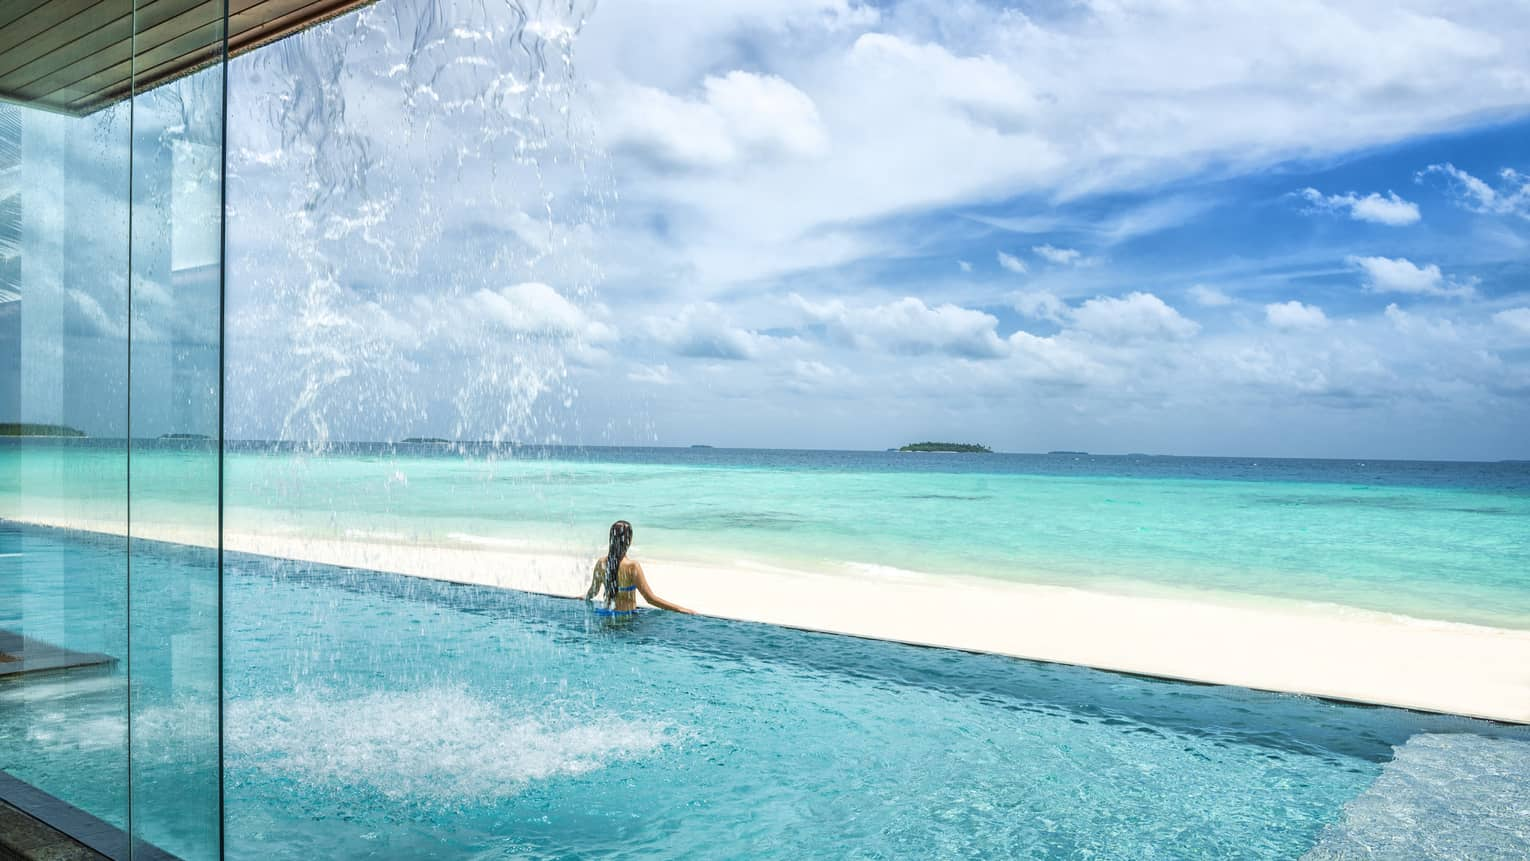 Woman stands at edge of infinity swimming pool looking out over white sand beach, blue ocean